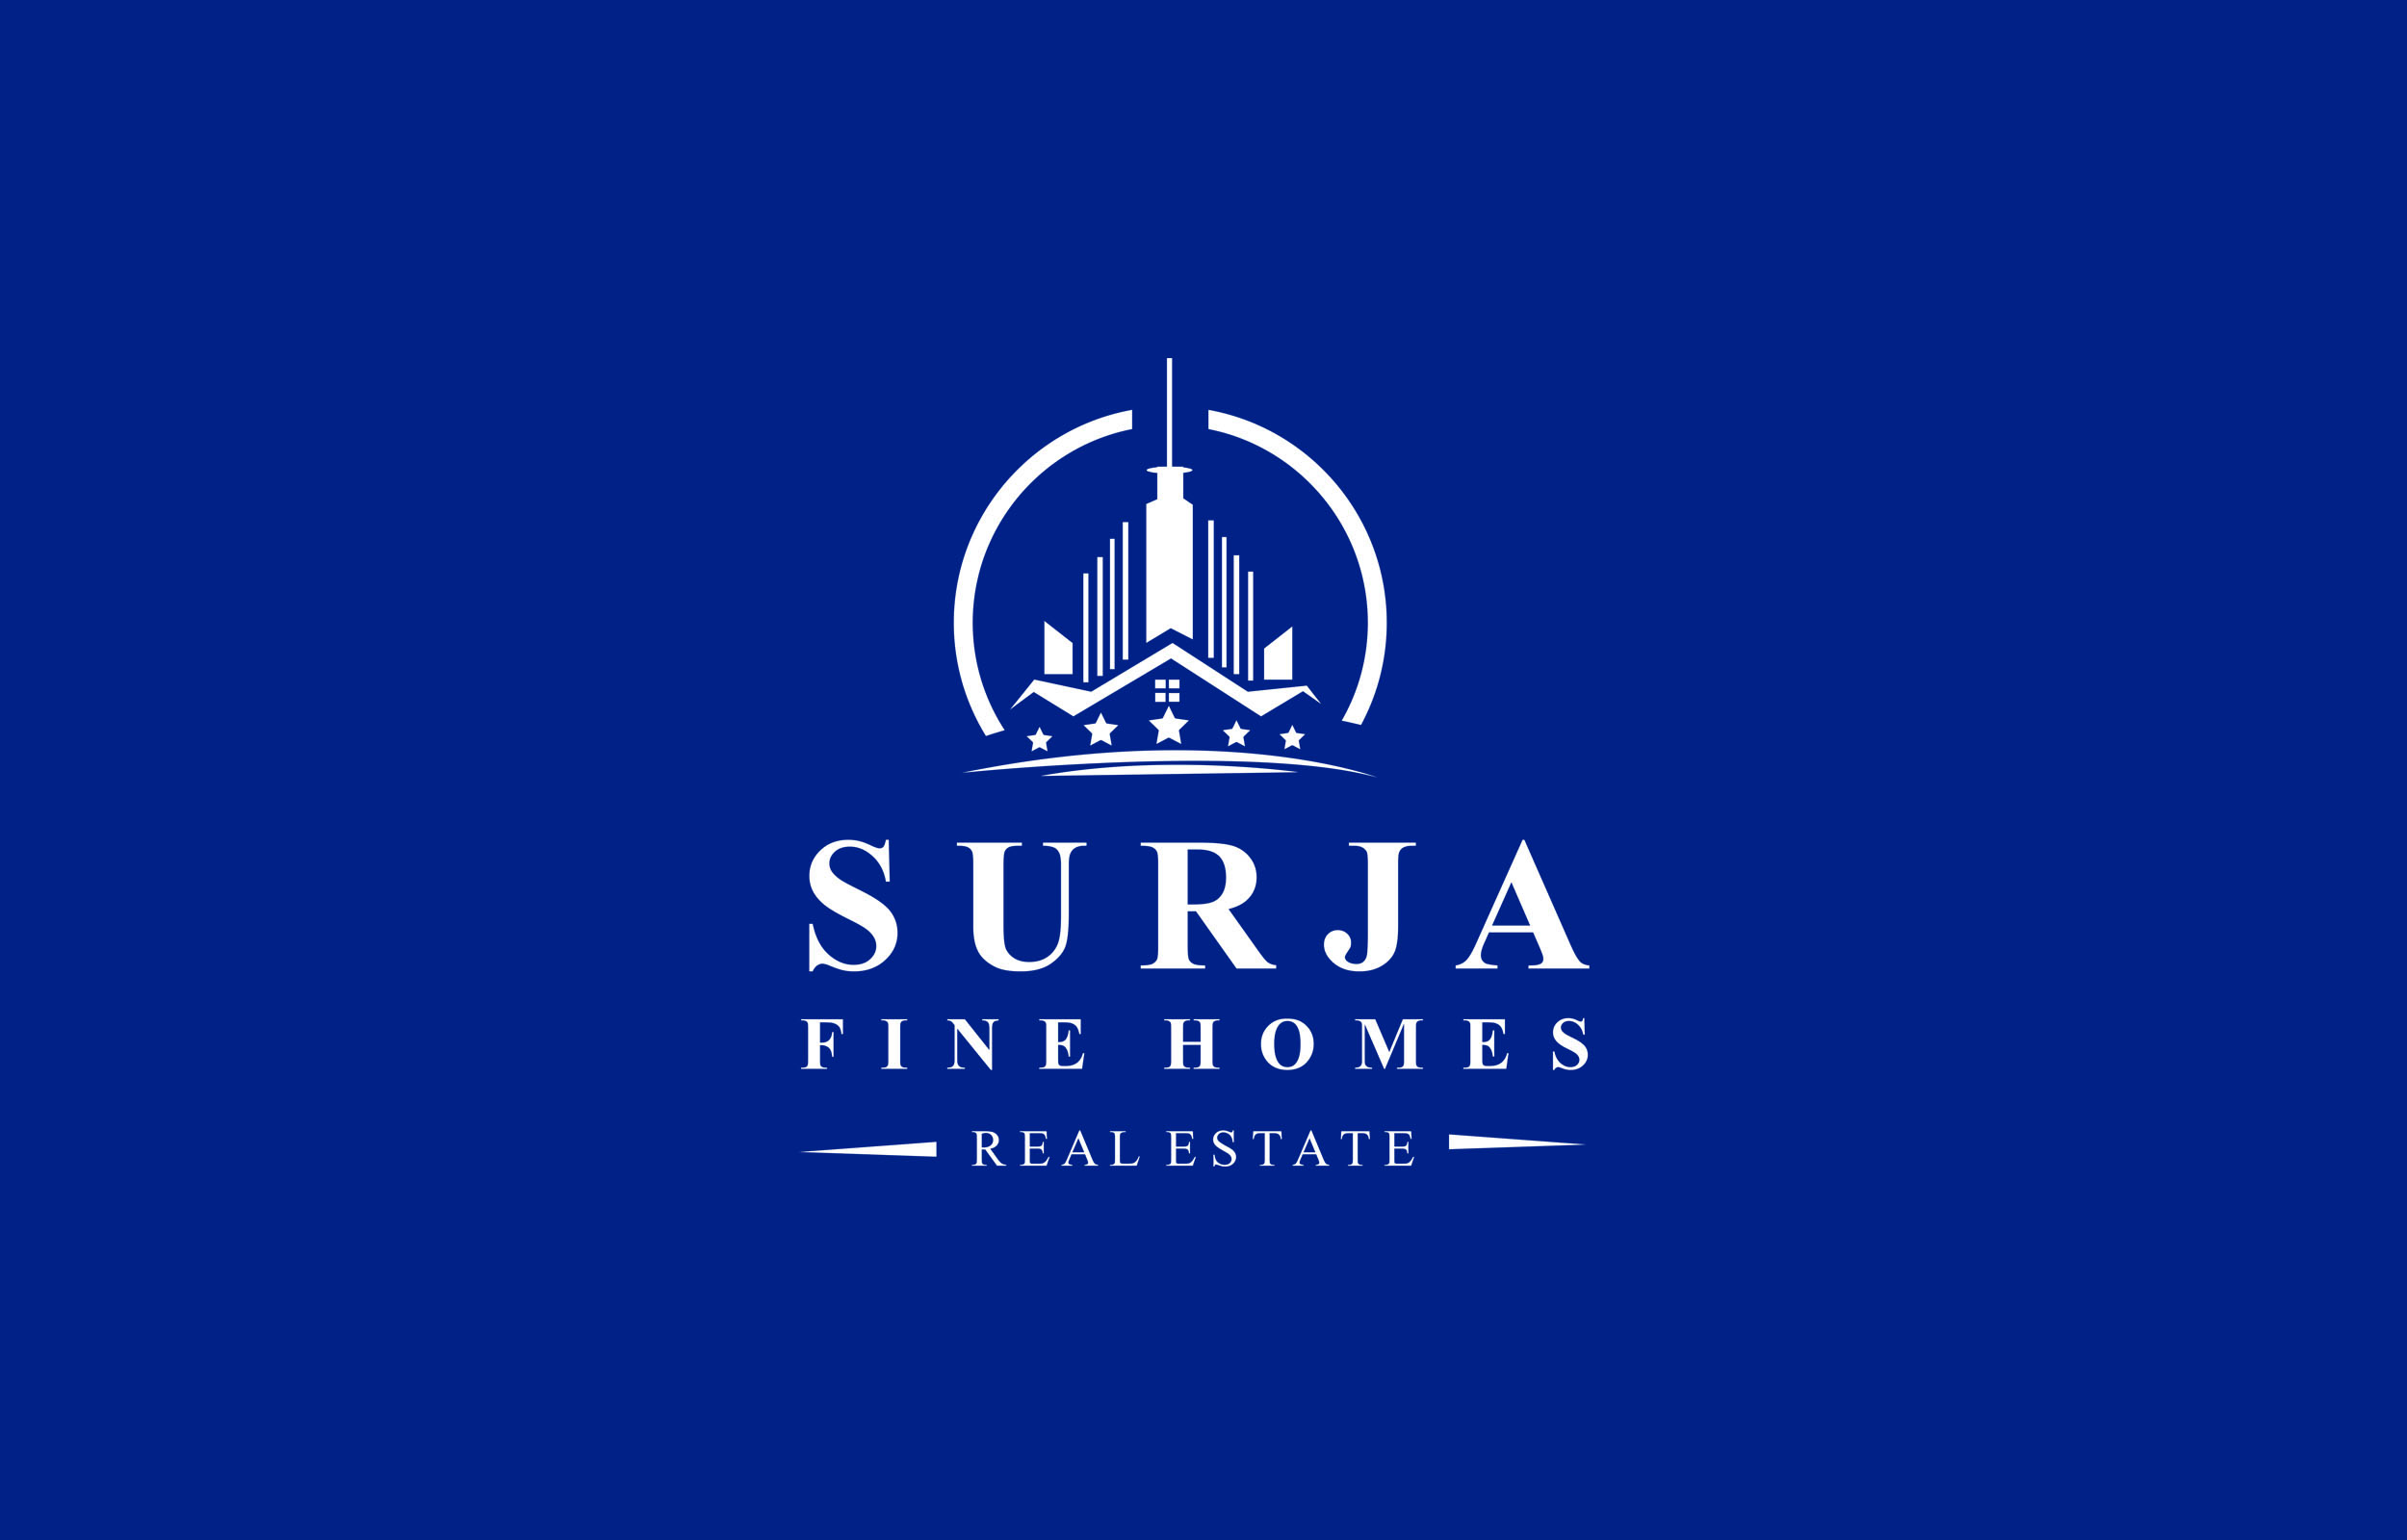 I will design real estate or property management logo